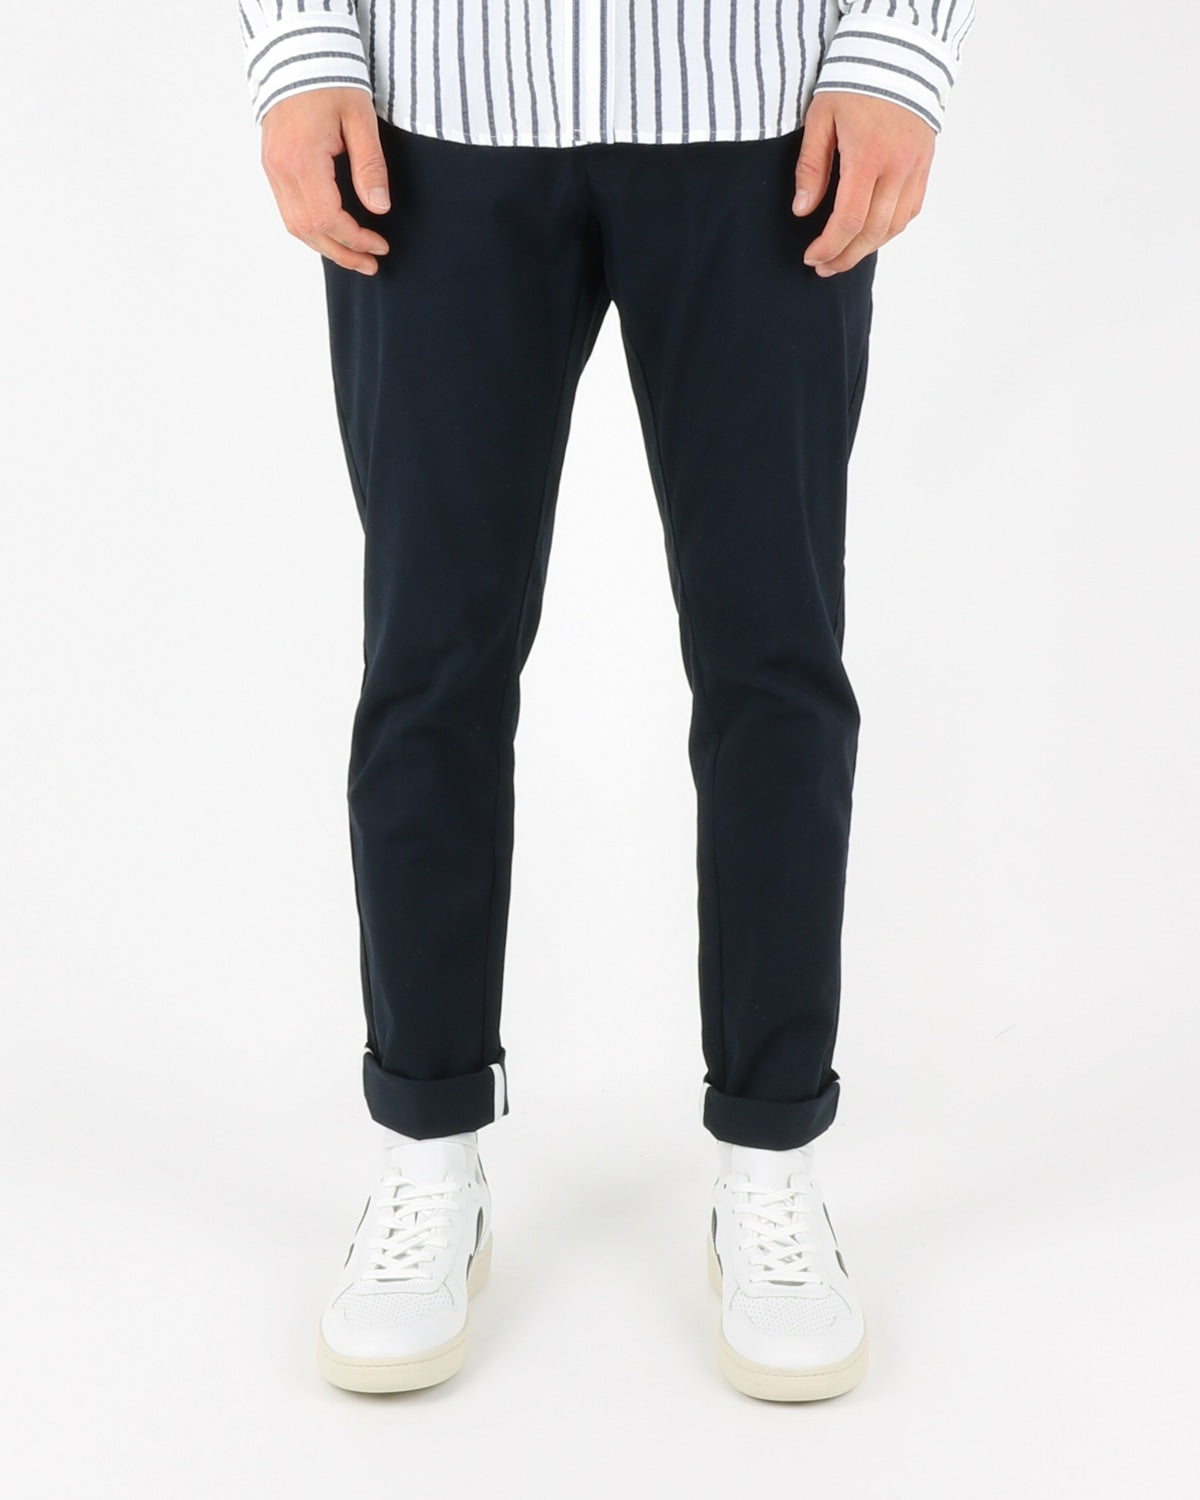 legends_century trousers_navy_1_3